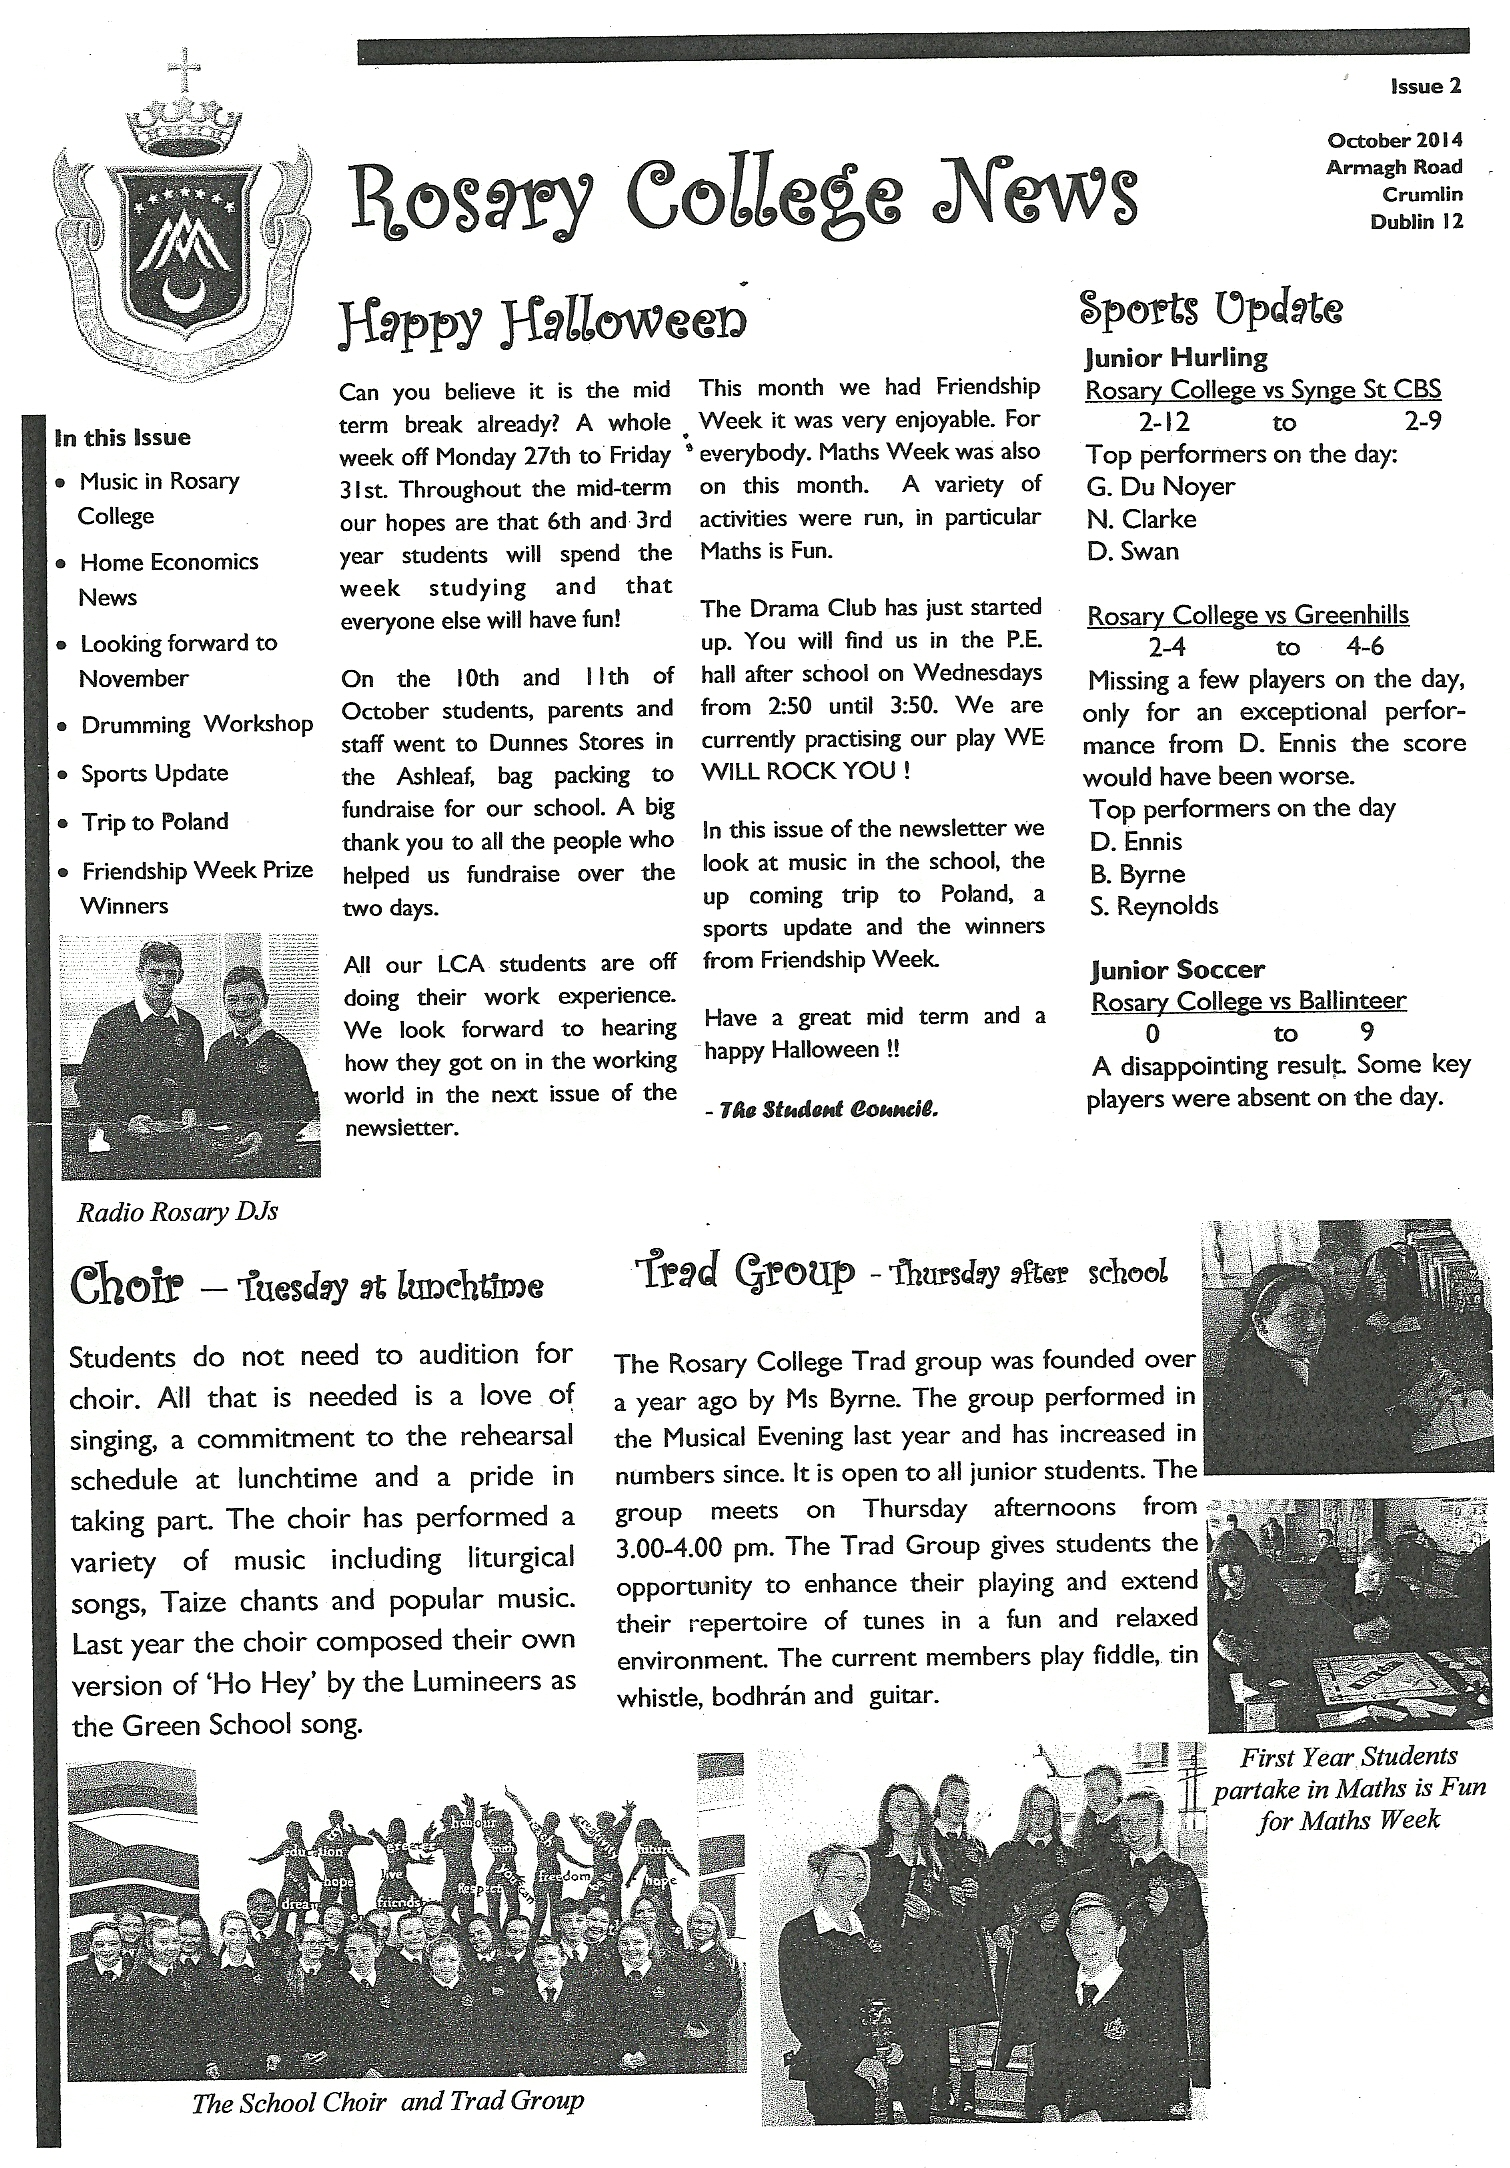 Rosary College Newsletter - Issue 2 - October 2014